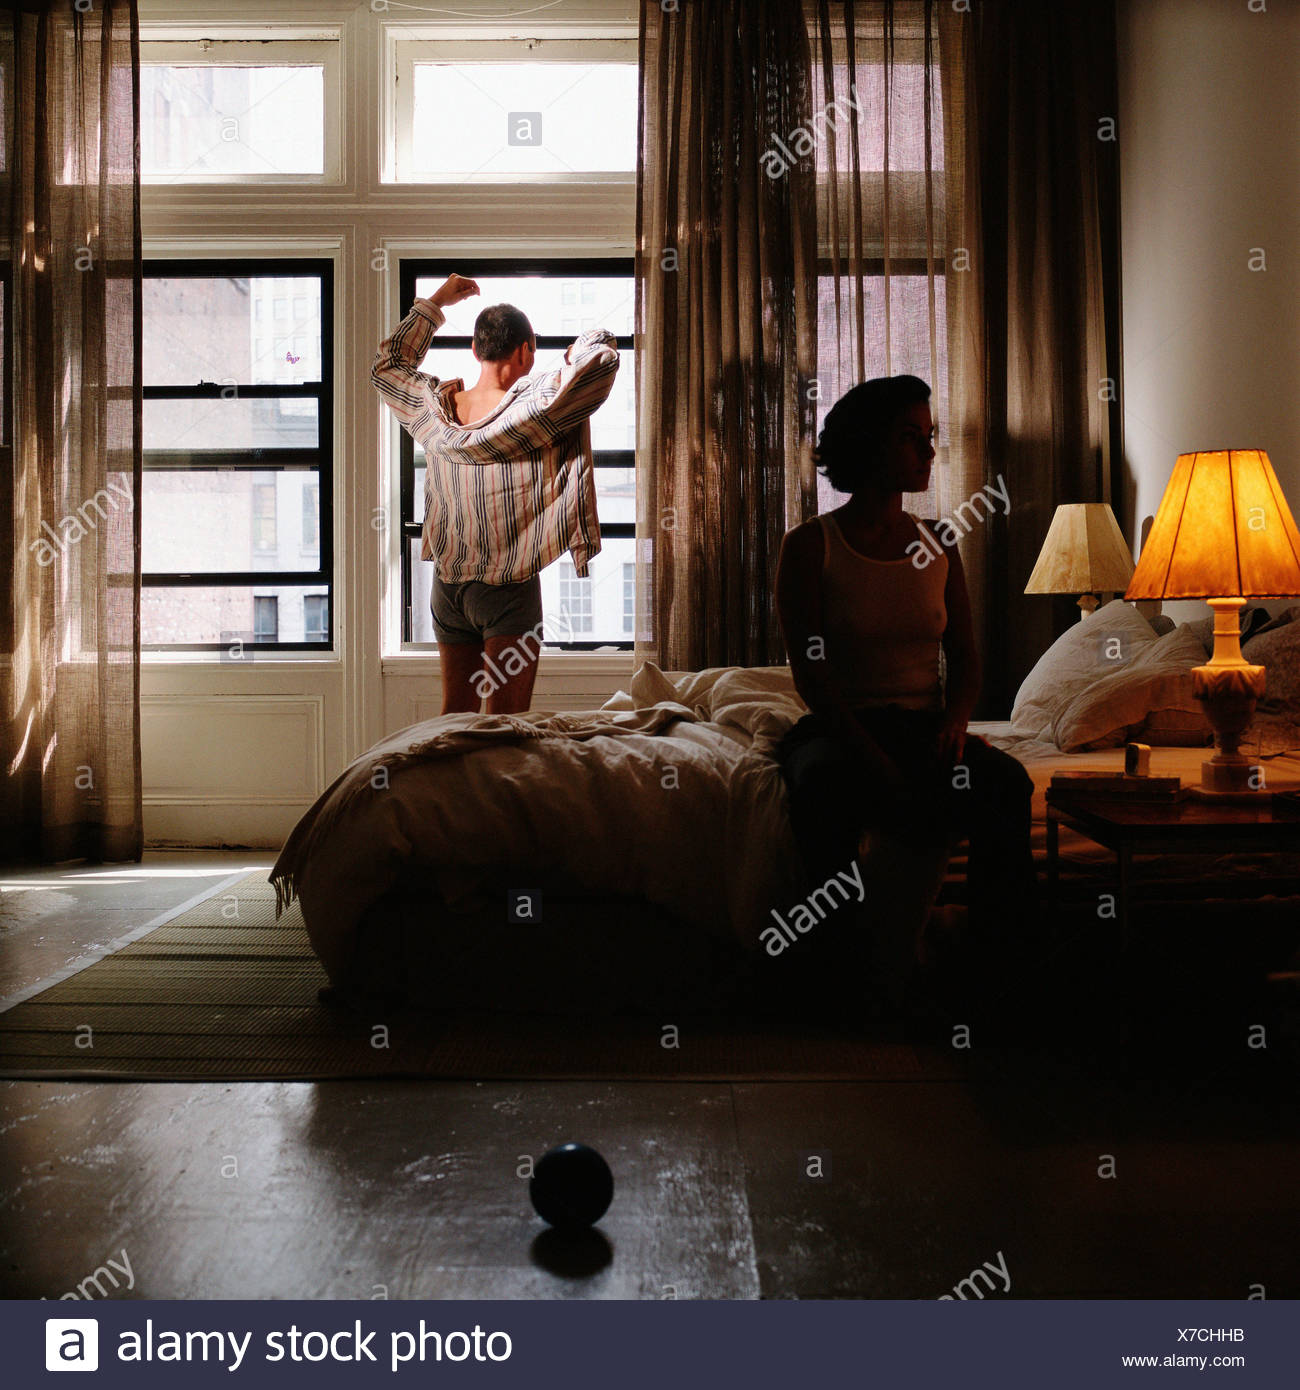 Couple in bedroom - Stock Image